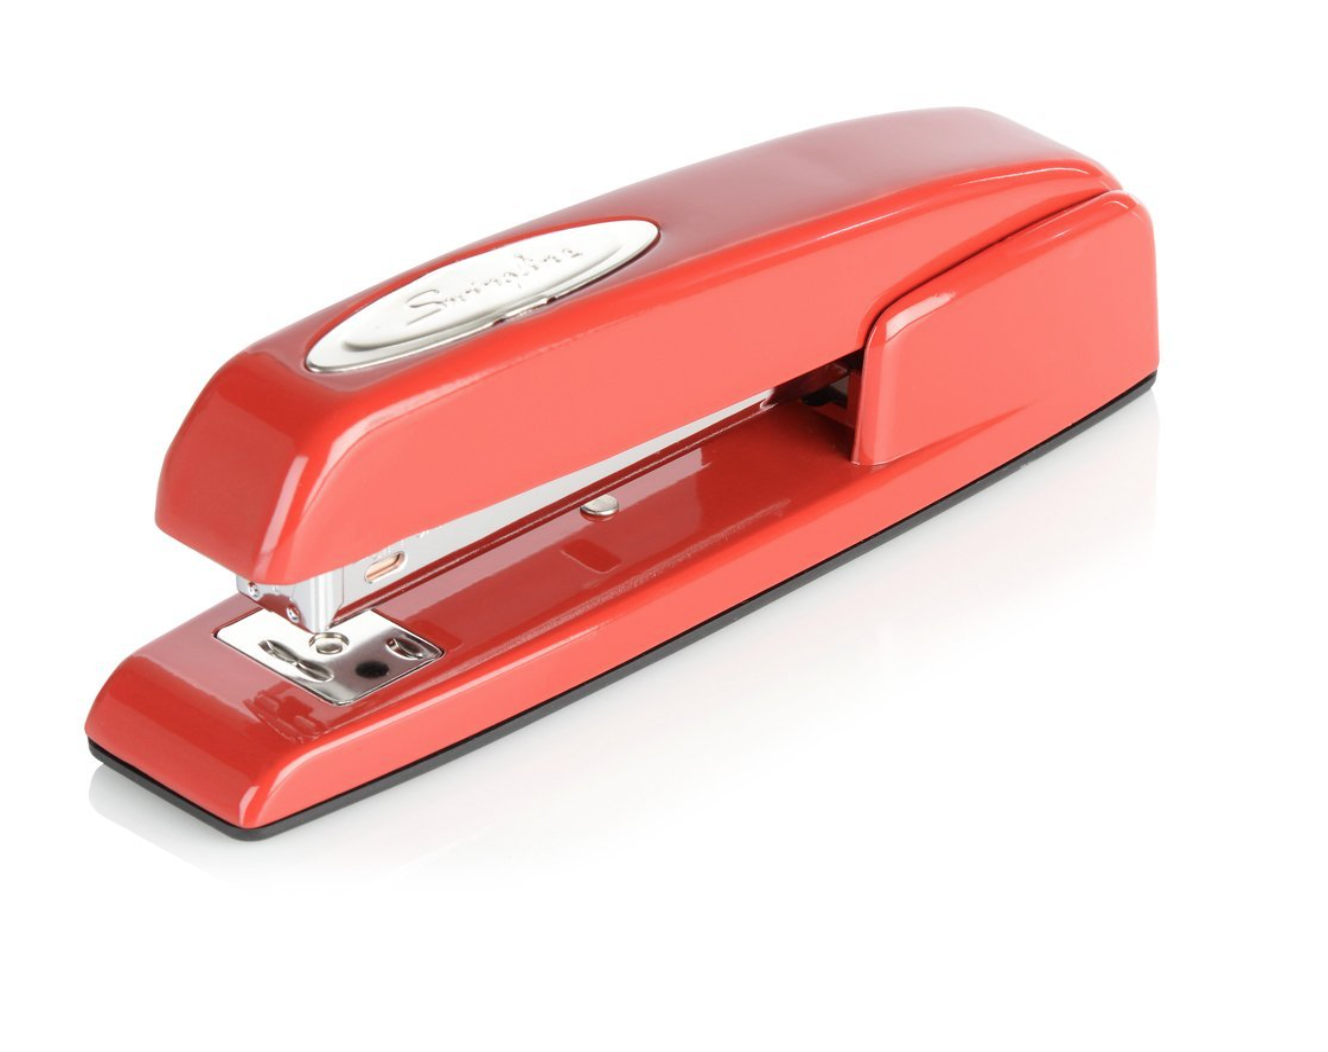 Swingline Stapler - From Amazon: Best heavy duty classroom stapler you'll ever find.